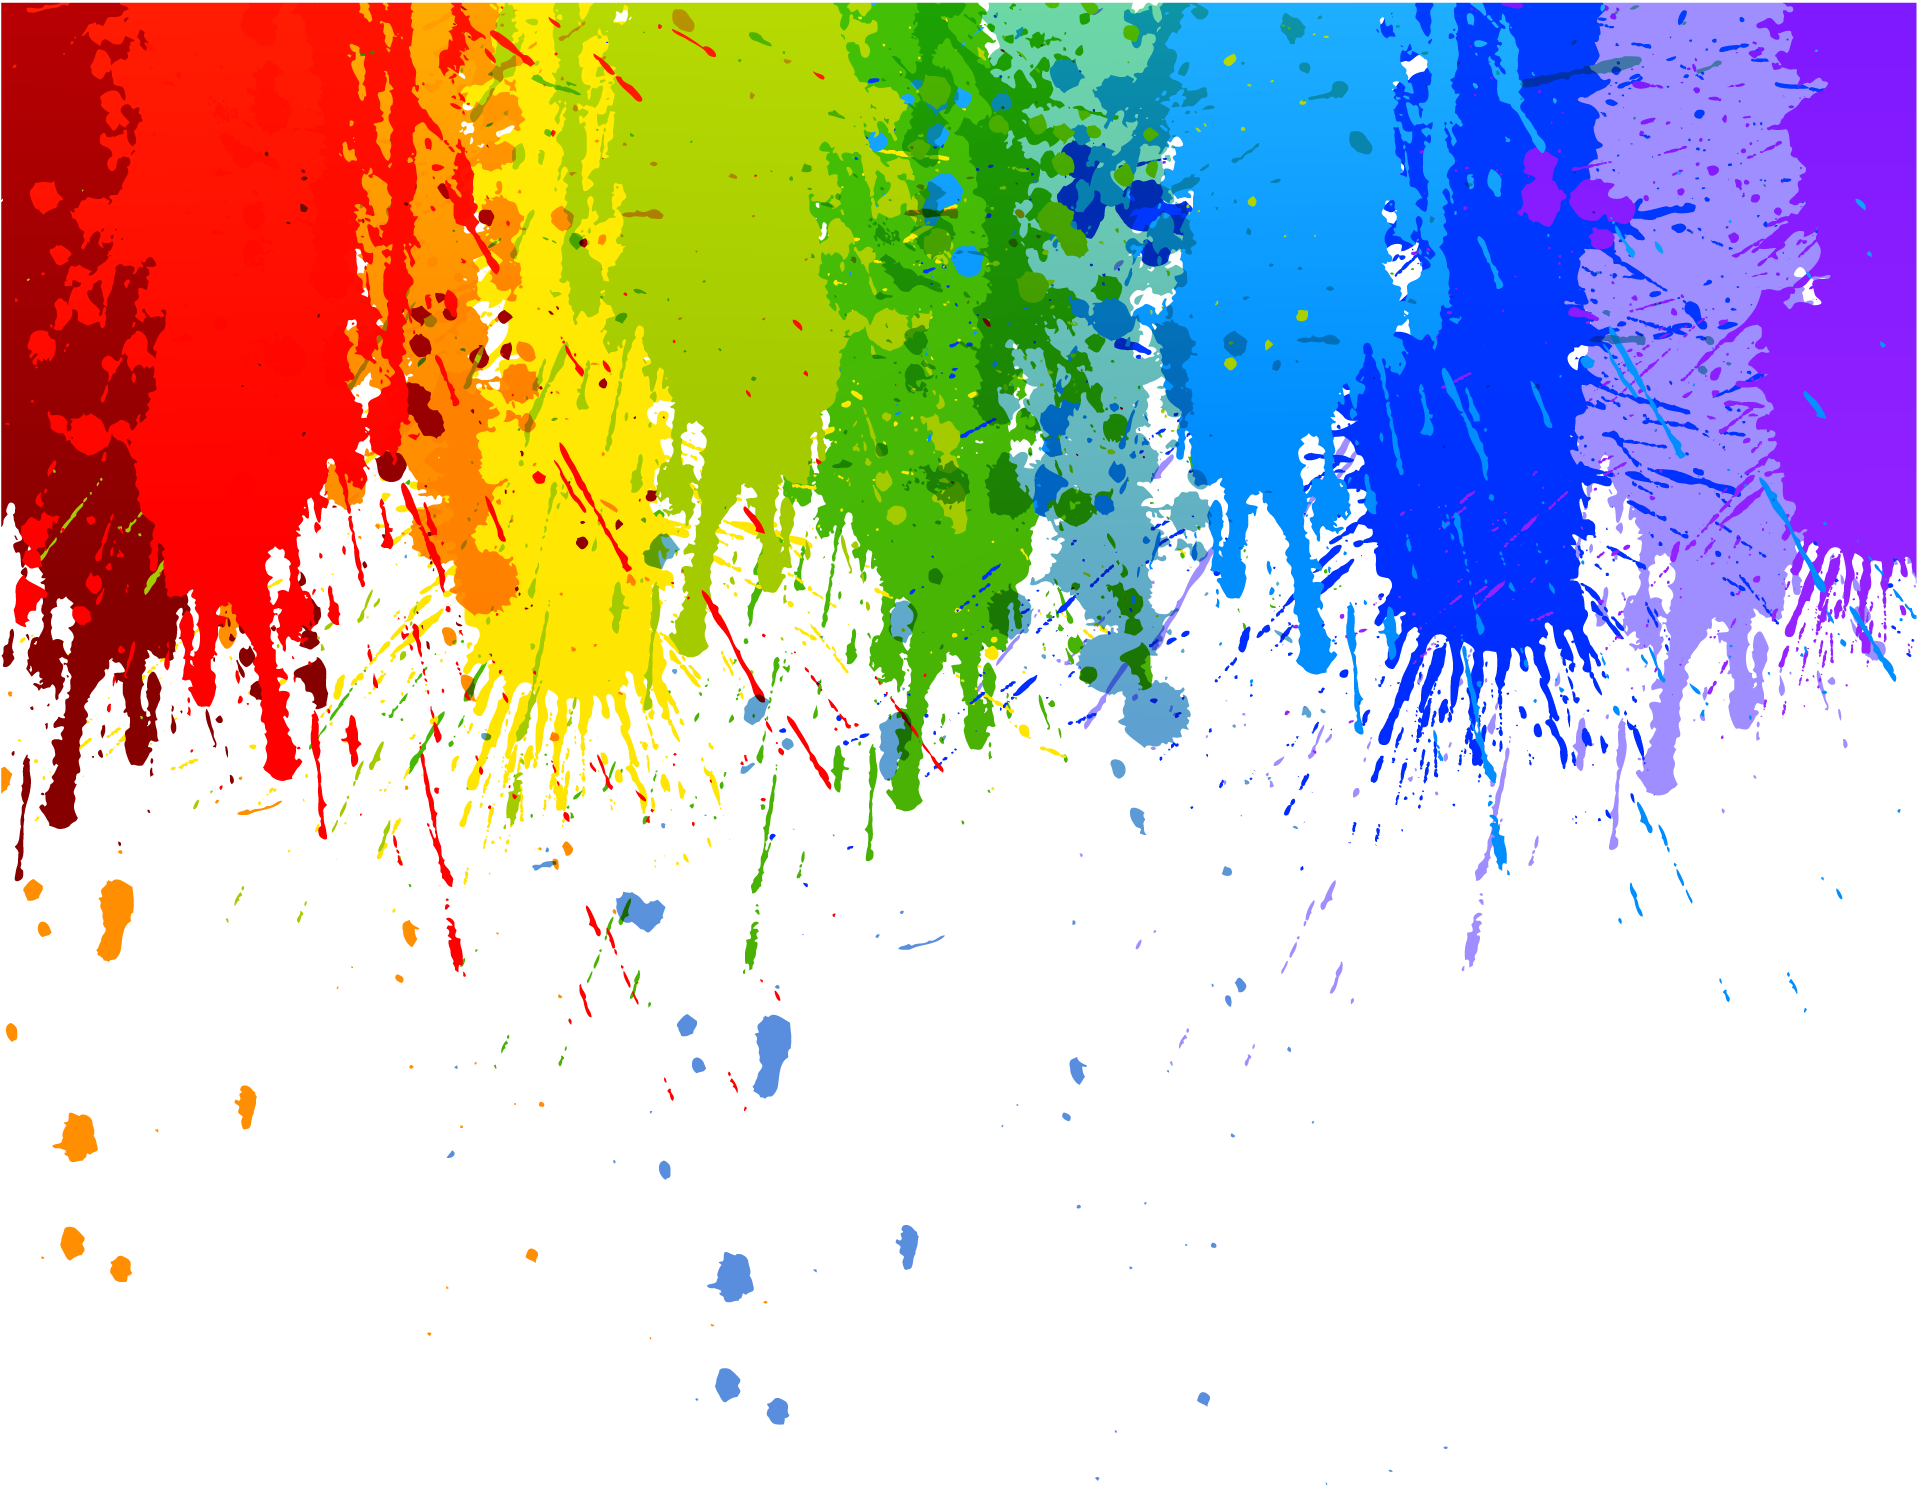 Rainbow Colour Splash Drip Transparent Background Watercolor Ideas In 2019 Paint